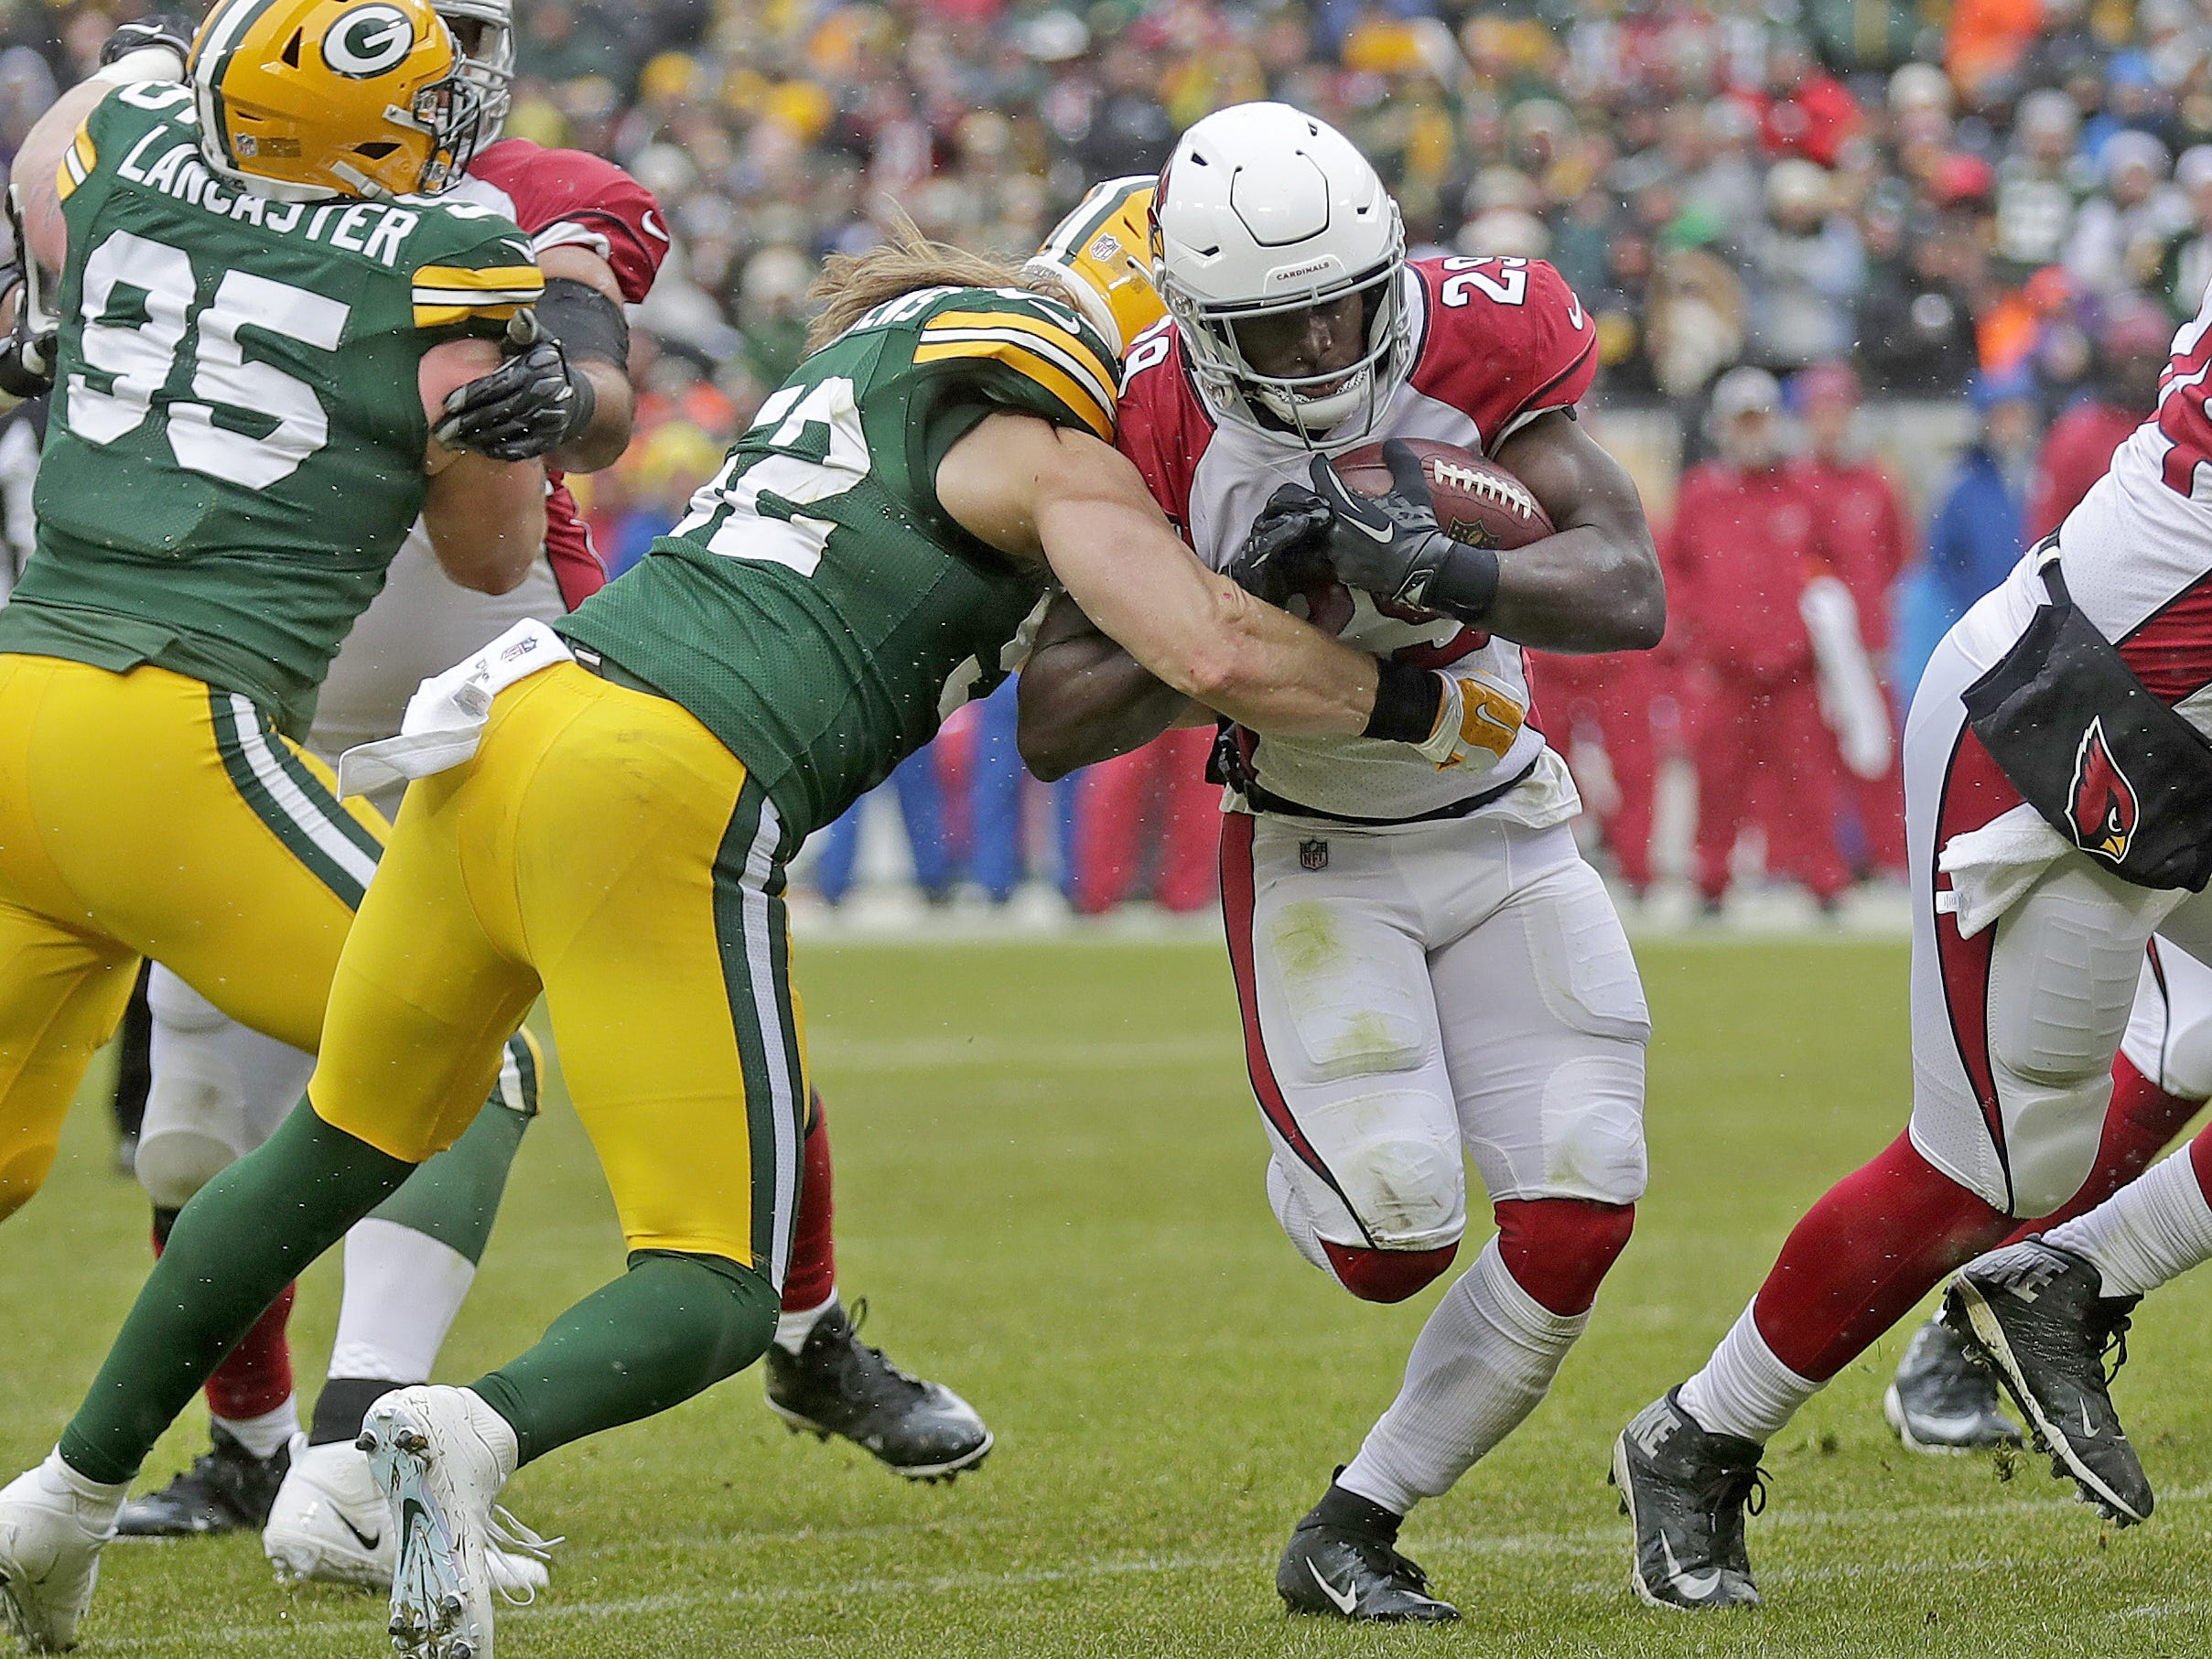 Green Bay Packers outside linebacker Clay Matthews (52) hits but can't stop running back Chase Edmonds (29) from scoring a touchdown in the second quarter against the Arizona Cardinals Sunday, December 2, 2018 at Lambeau Field in Green Bay, Wis. Jim Matthews/USA TODAY NETWORK-Wis